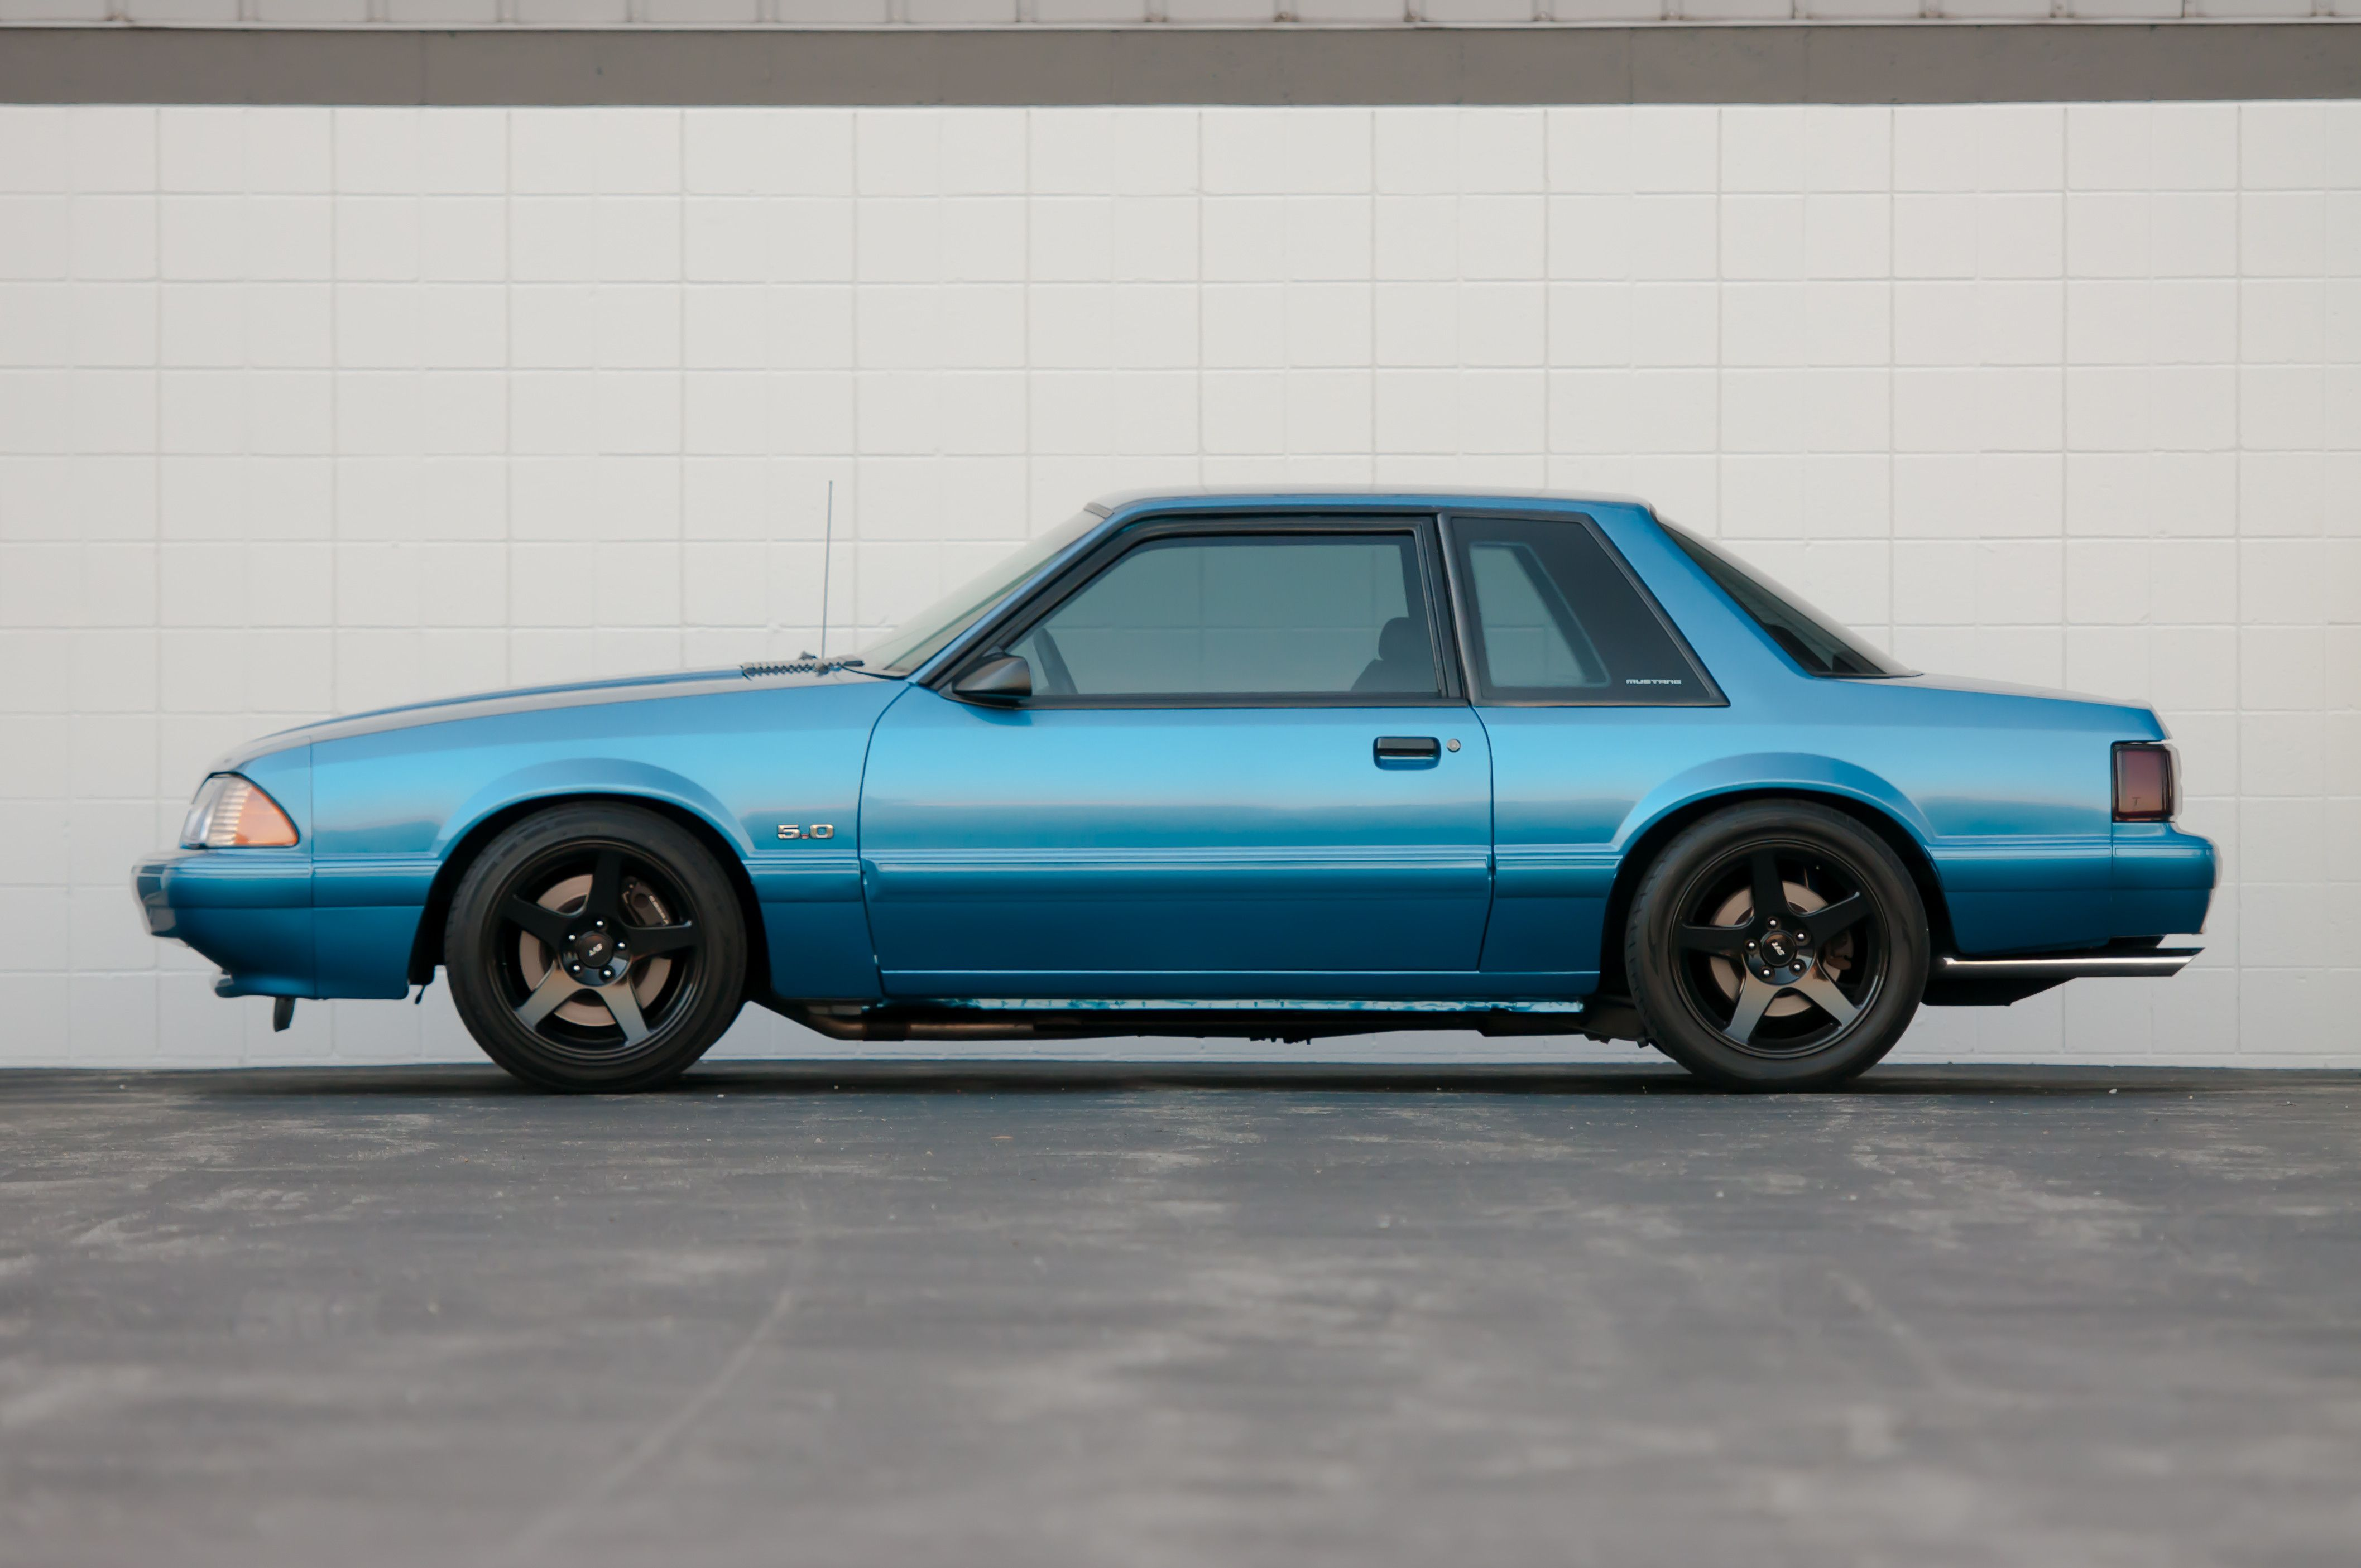 Pin By J On Frisco Style Fox Body Mustang Notchback Mustang Fox Mustang